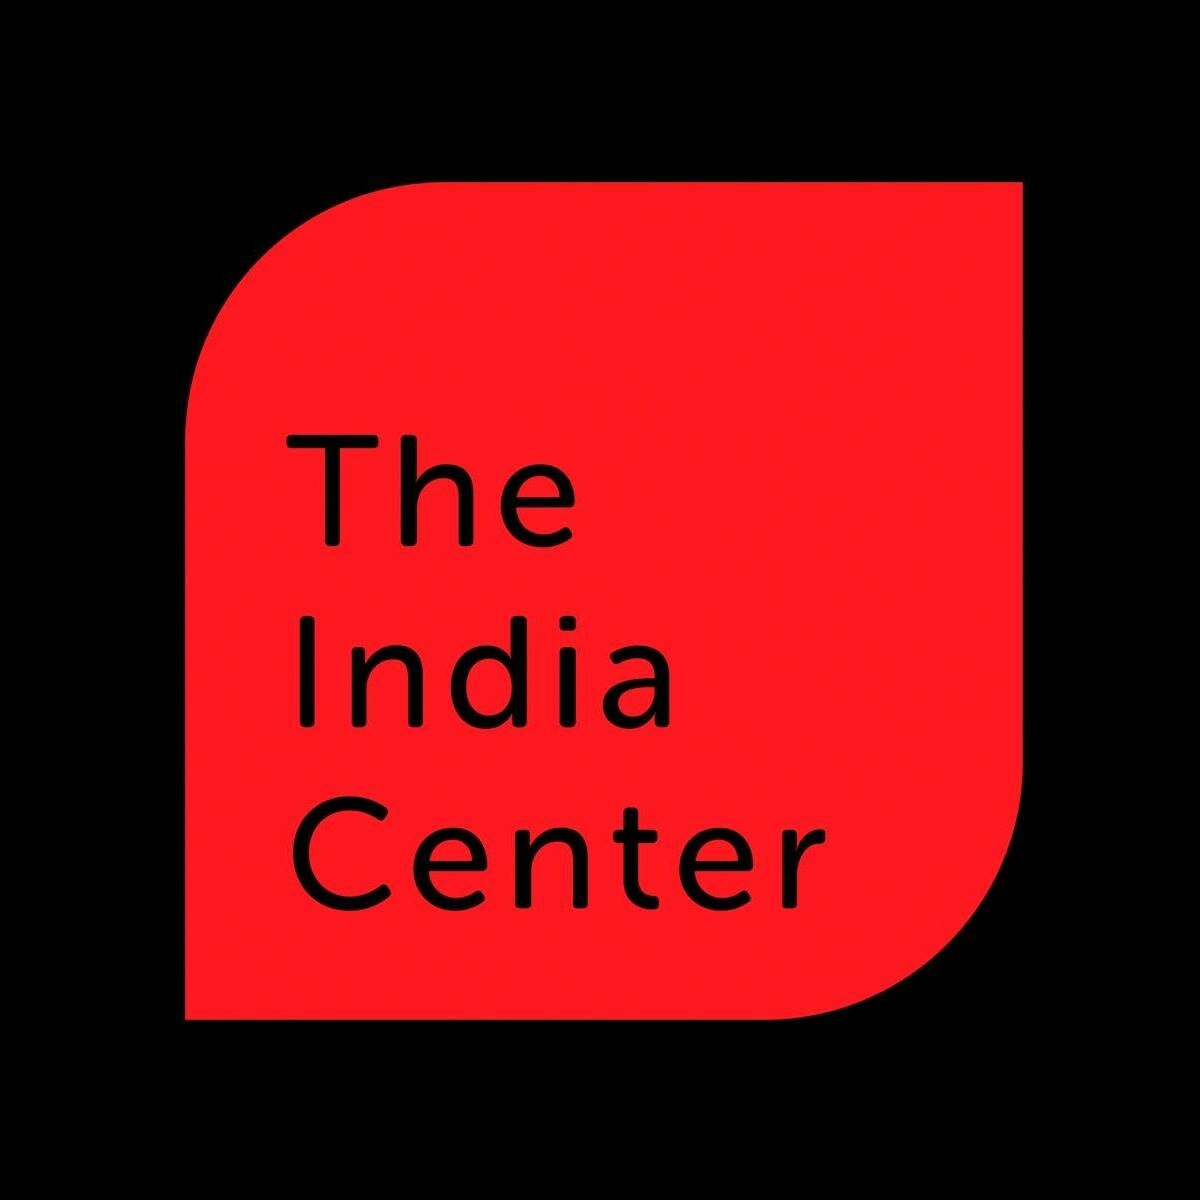 red shape with black text india center